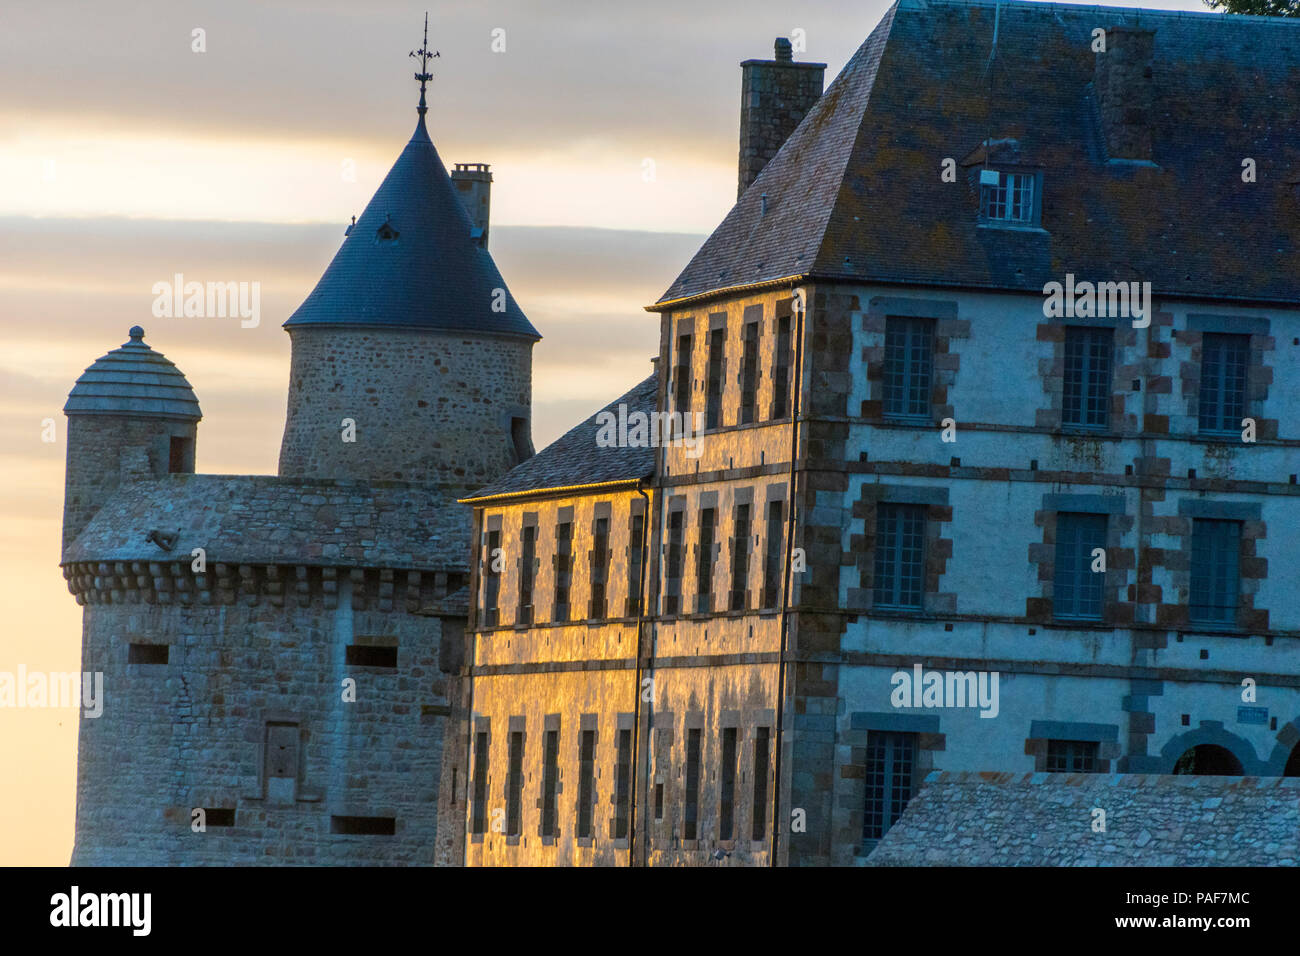 Mont St. Michel, Normandy, France. the southern edge of the Island at dusk. Stock Photo